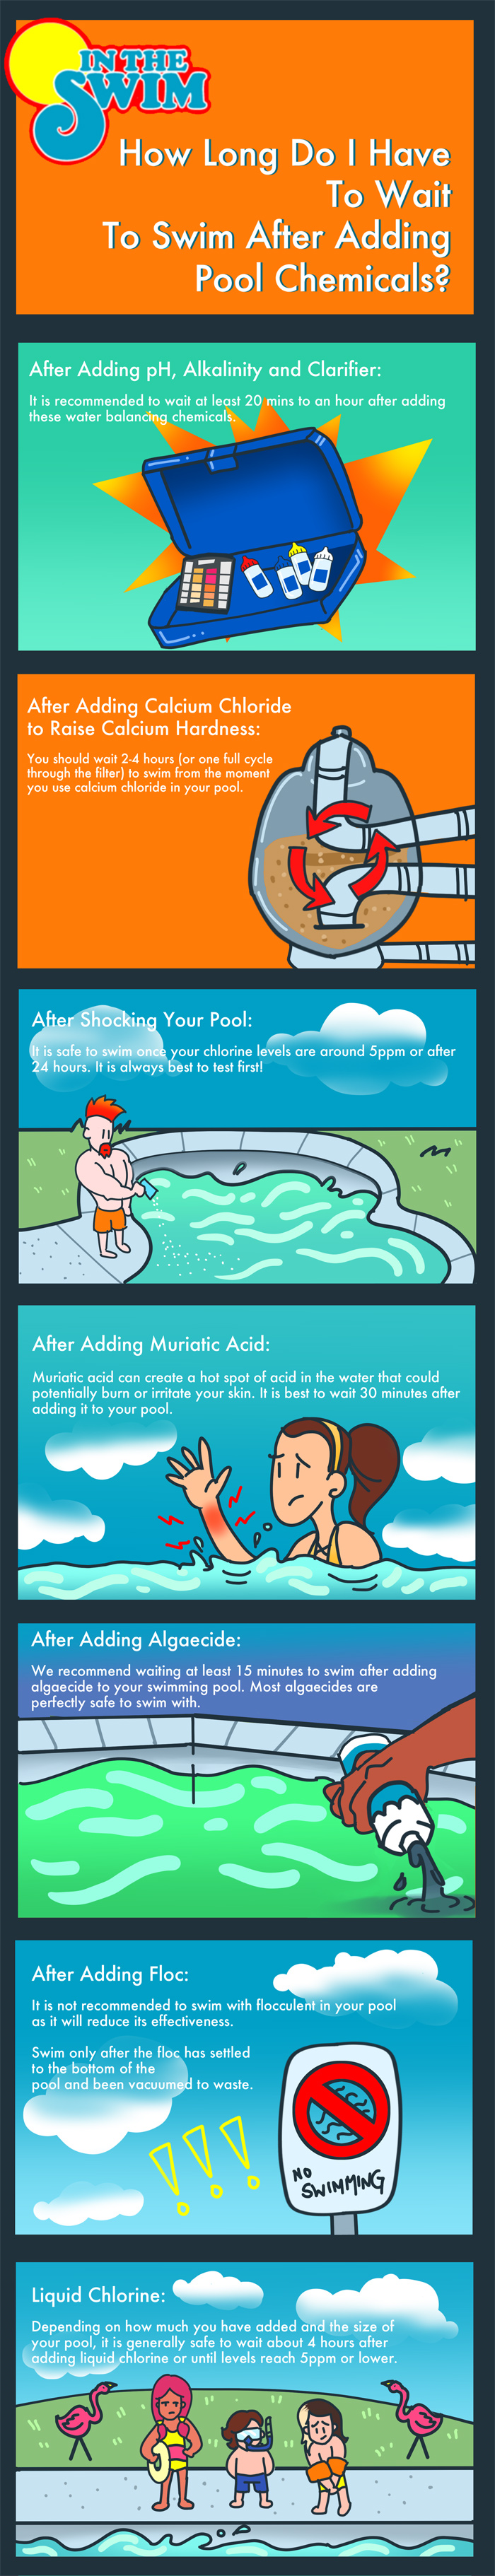 How Long Should I Wait To Swim After Adding Pool Chemicals Infographic From Intheswim Com Swimming Pool Maintenance Pool Care